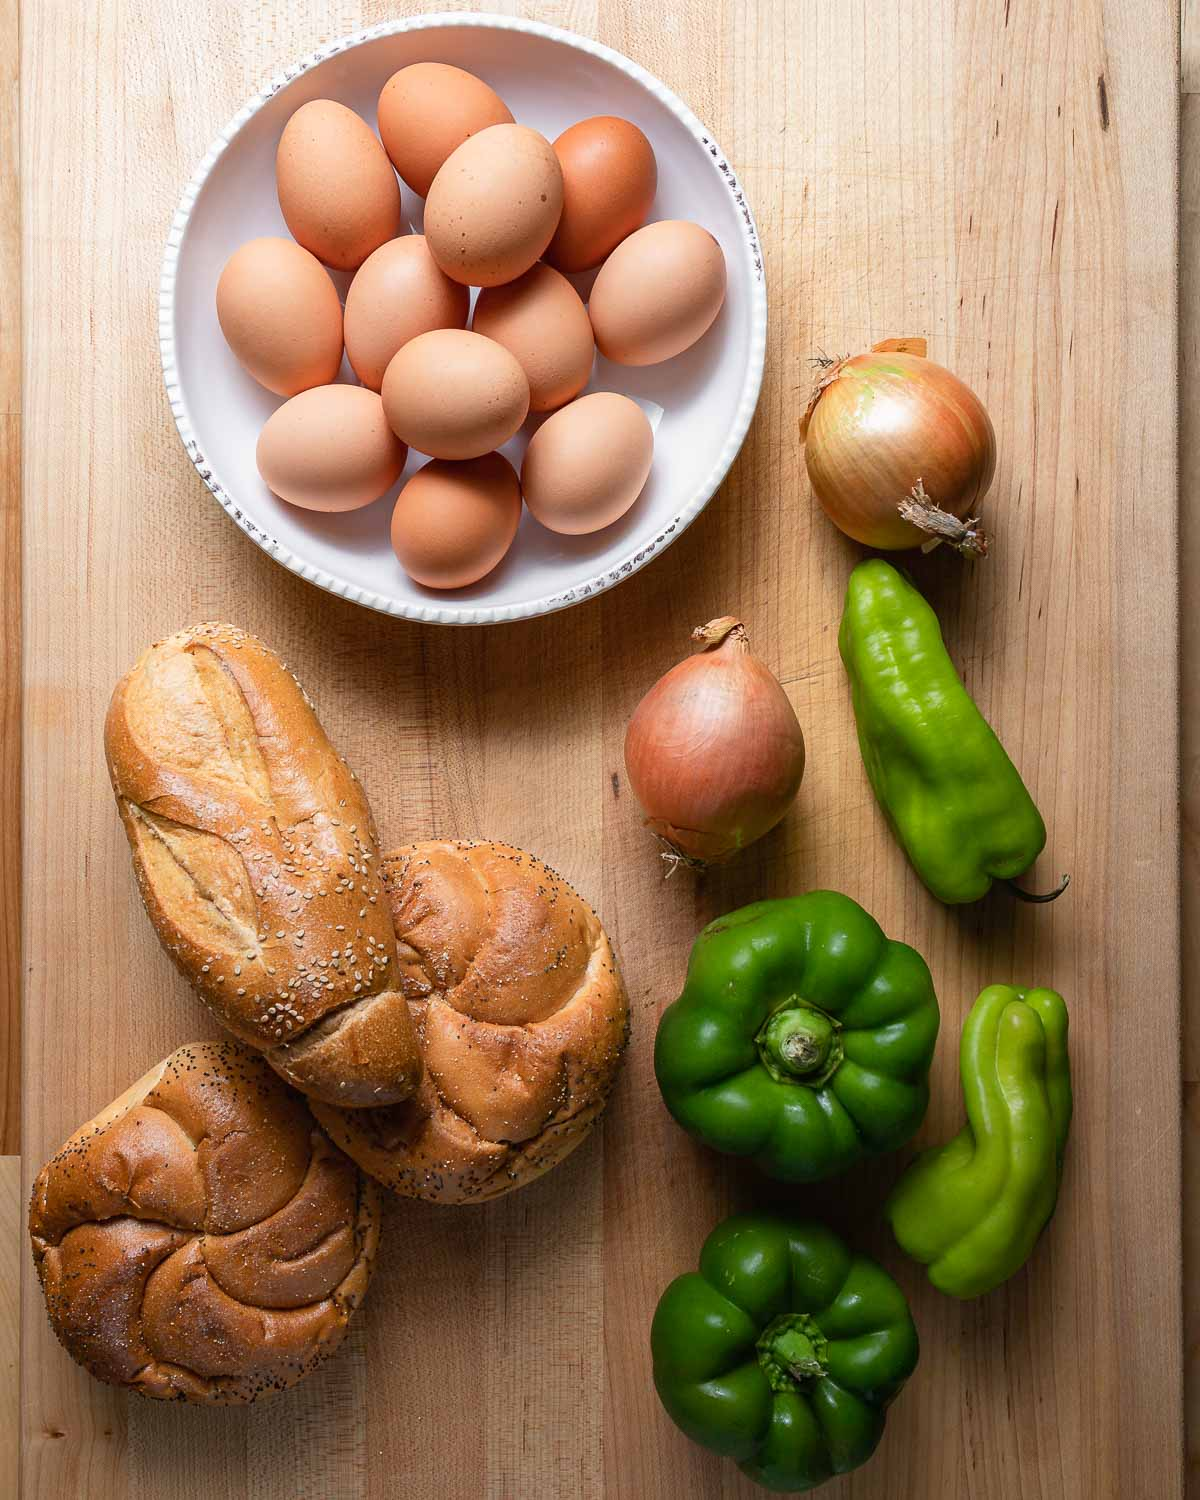 Ingredients shown: bowl of eggs, onions, peppers, hero and round rolls.